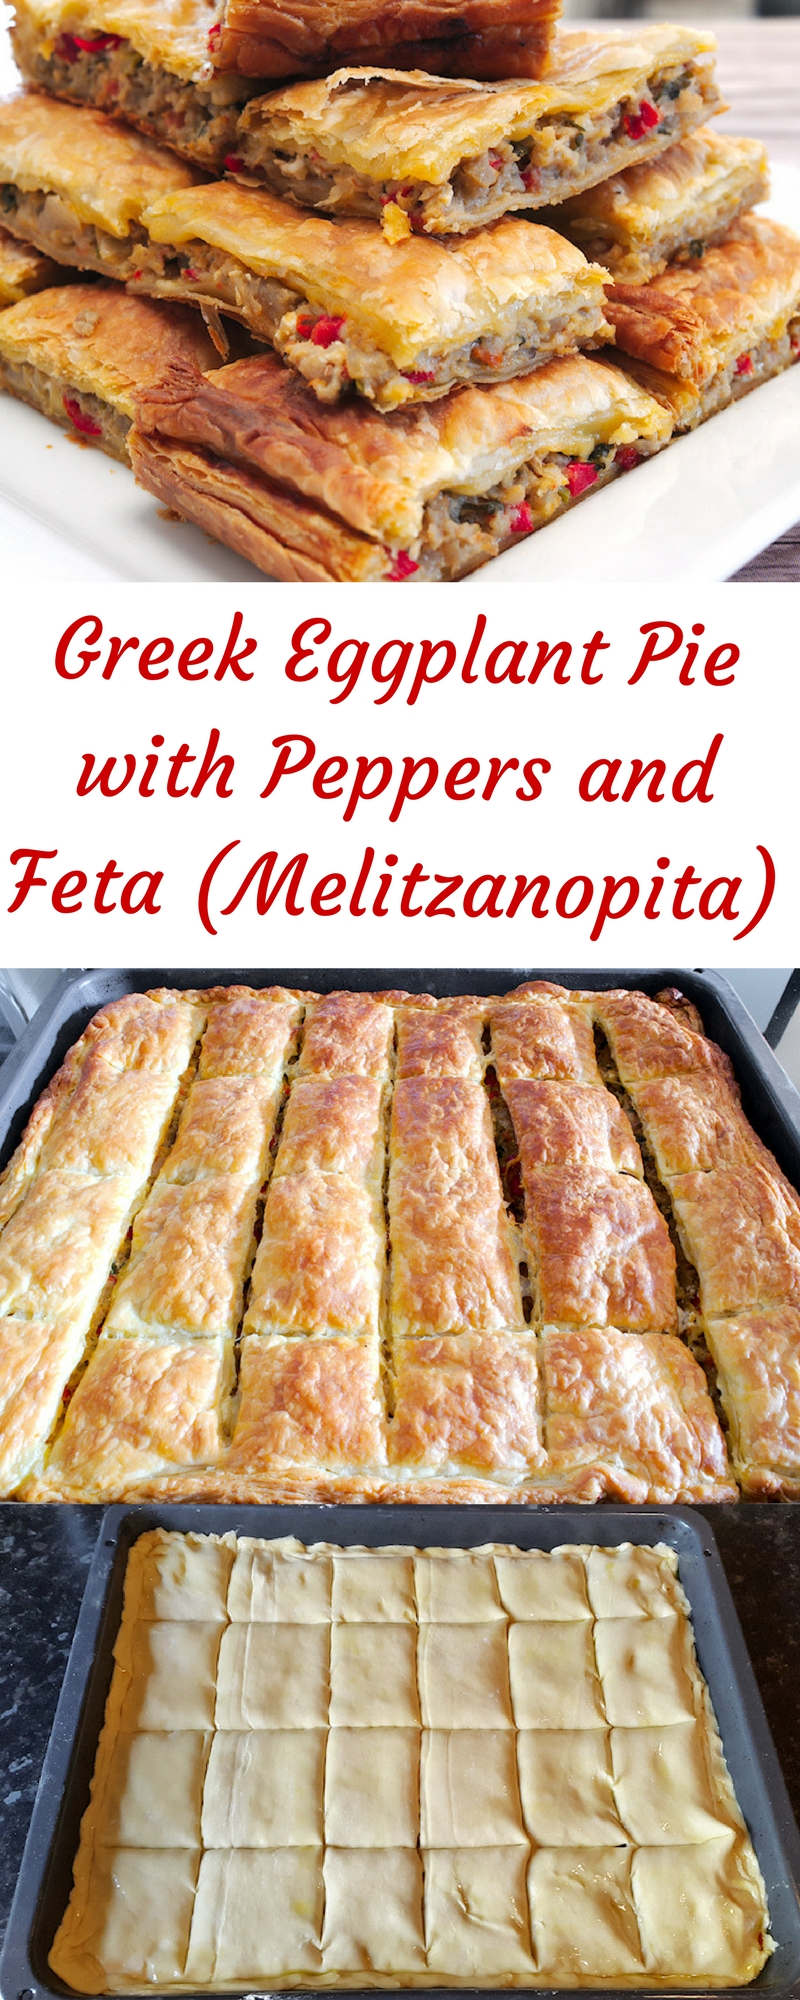 Greek Eggplant Pie with Peppers and Feta (Melitzanopita)